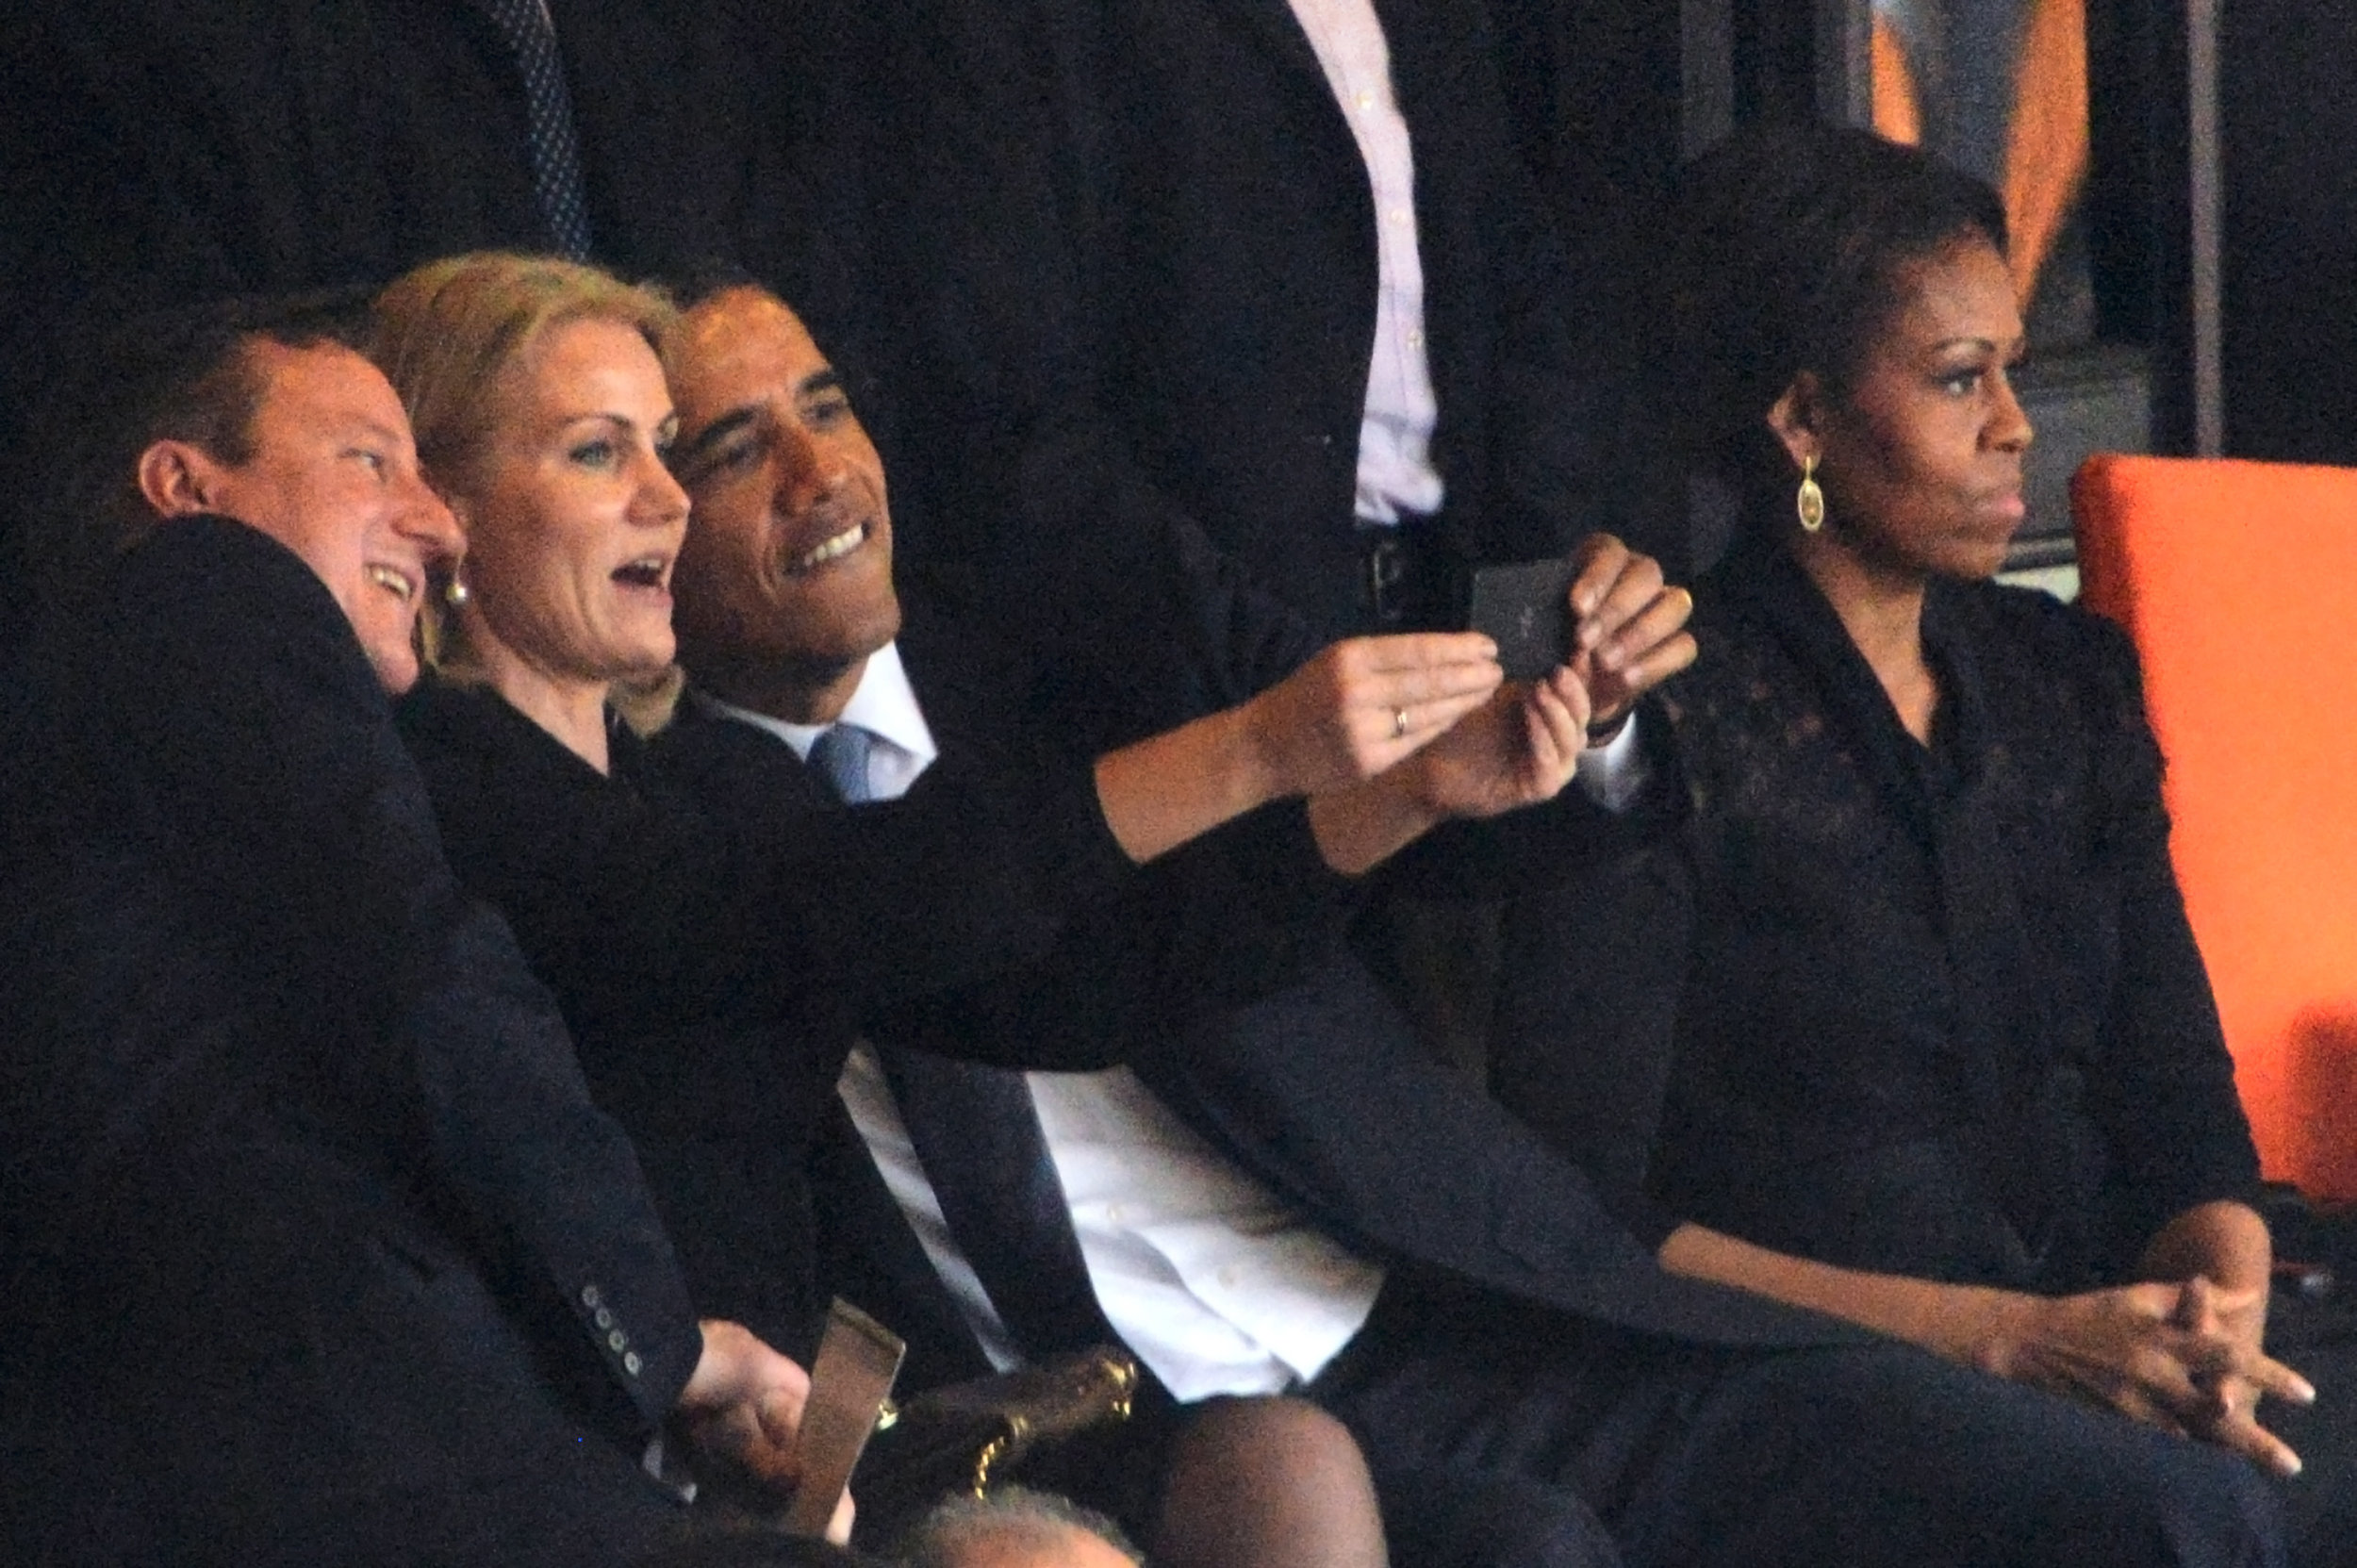 From left to right: David Cameron, Helle Thorning-Schmidt, Barack Obama and Michelle Obama at Nelson Mandela's funeral, 2013.